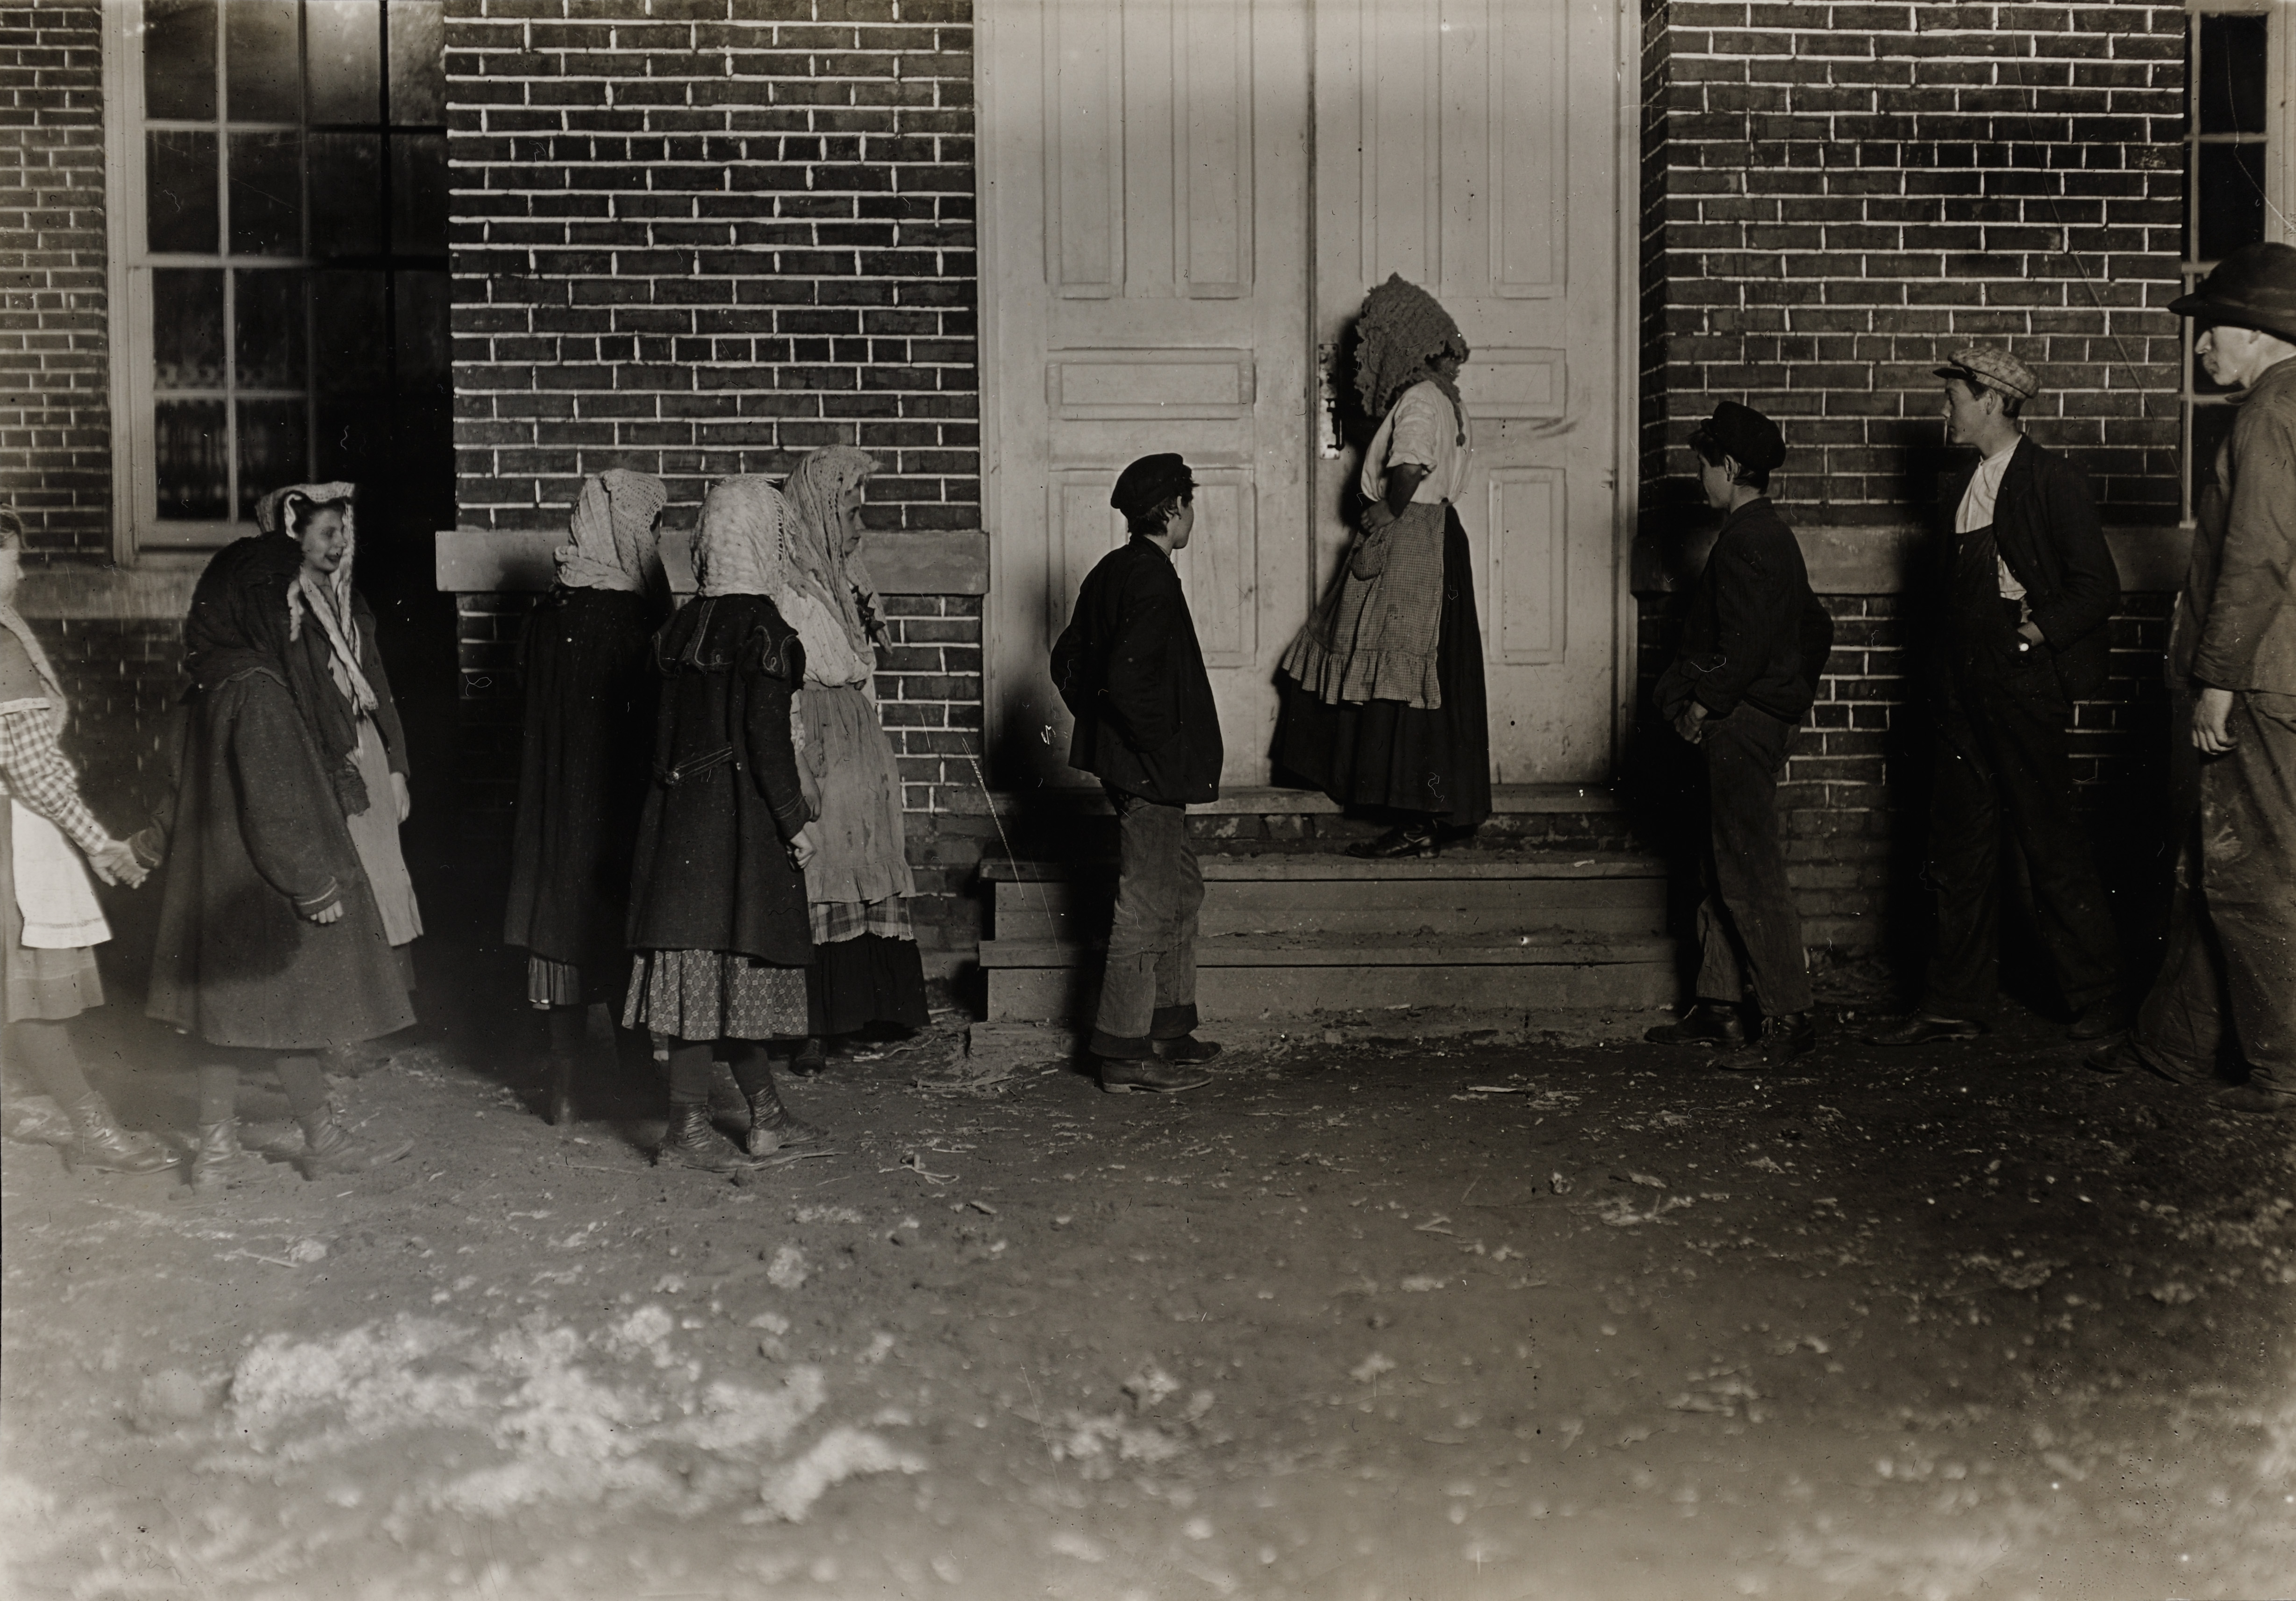 File:Child Labor in United States 1908, 12 hour night shifts.jpg